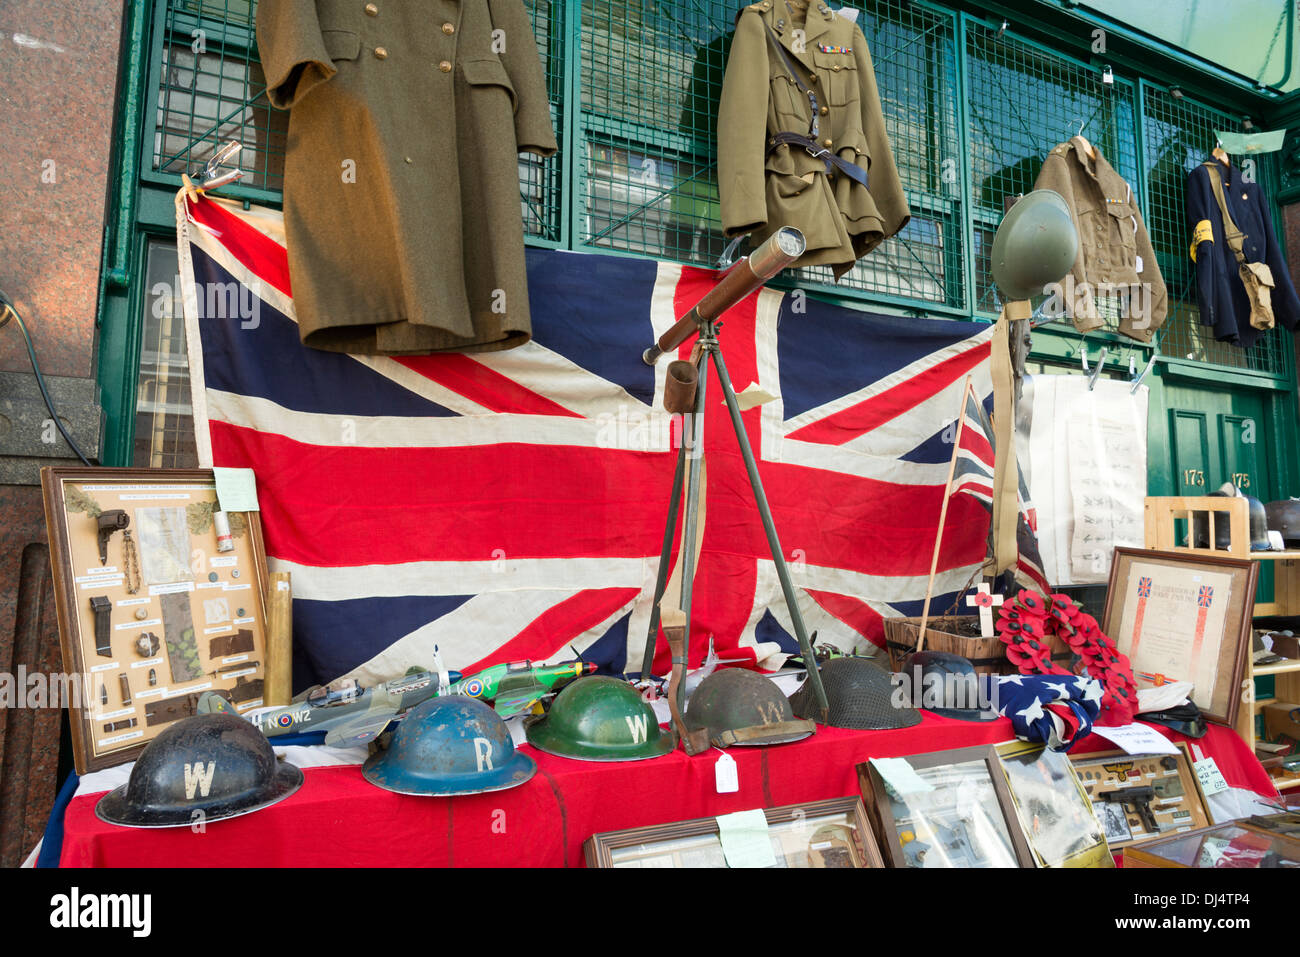 World War II memorabilia for sale on a stall at Portobello Road Market, Notting Hill, London, England, UK - Stock Image